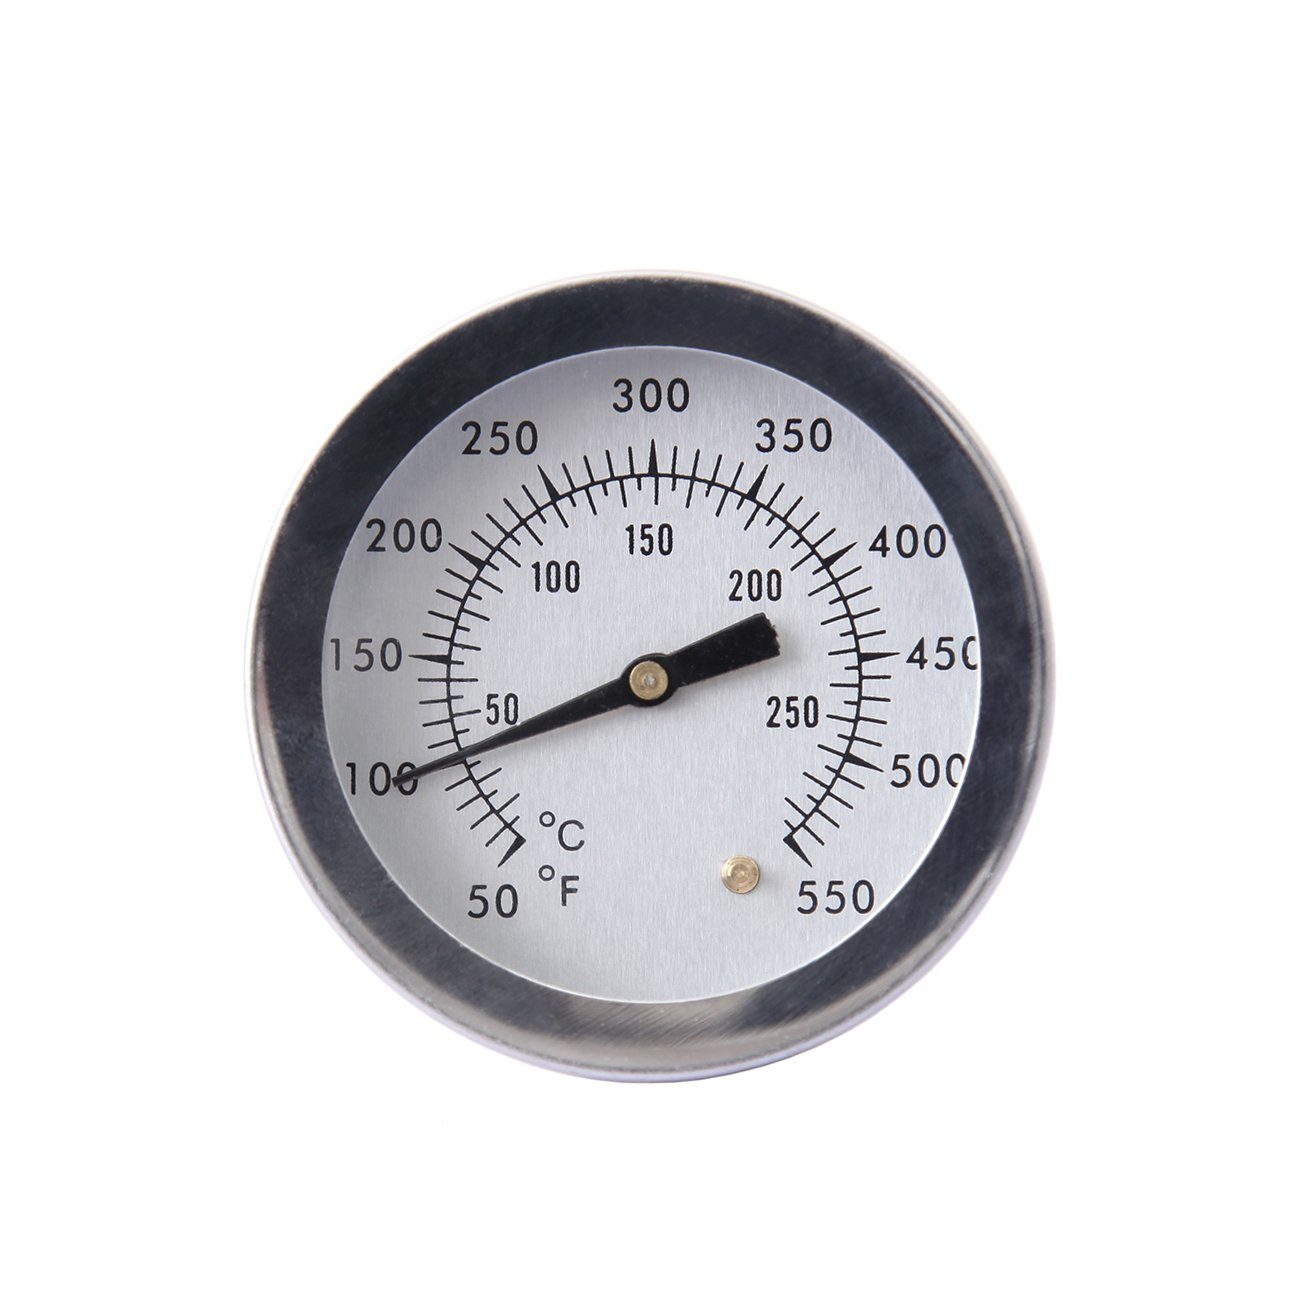 """Ridgeyard BBQ Barbecue Charcoal Grill Pit Wood Smoker Temperature Gauge Grill Pit Thermometer Fahrenheit Dia 2"""" for Barbecue Meat Cooking Beef Pork Lamb"""